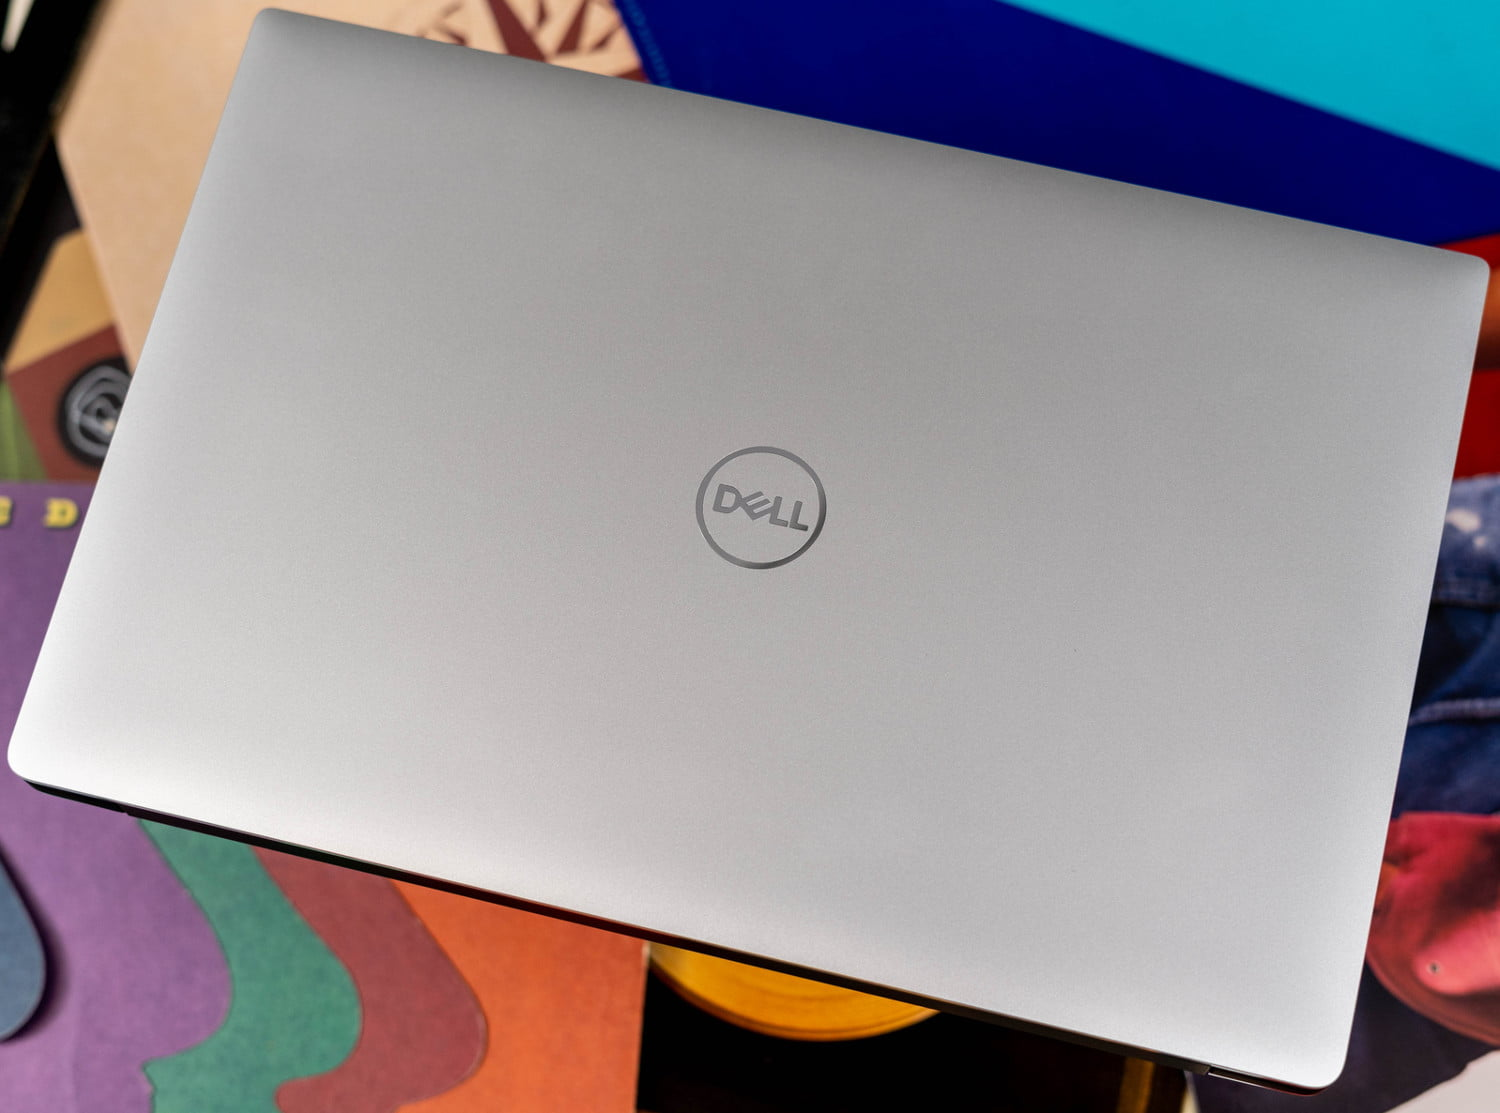 Dell XPS 15 (2019) review: The top video-editing laptop